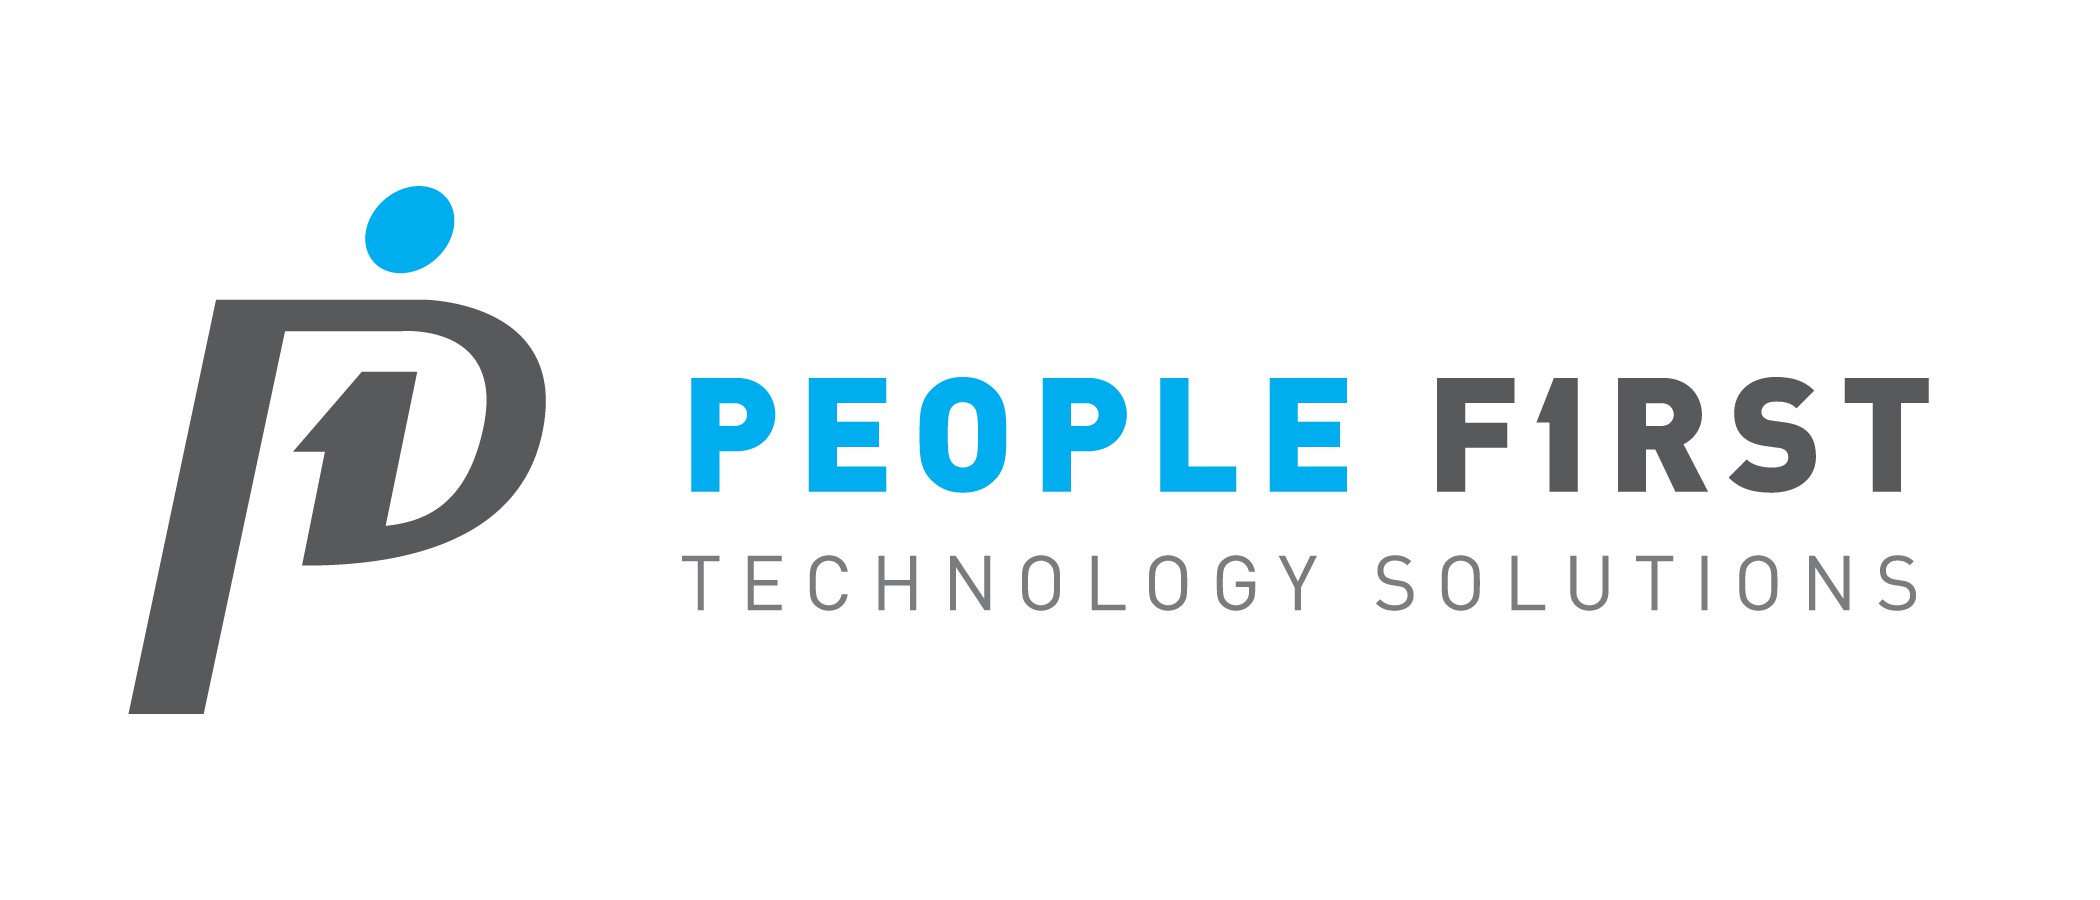 PEOPLE FIRST TECHNOLOGY SOLUTIONS